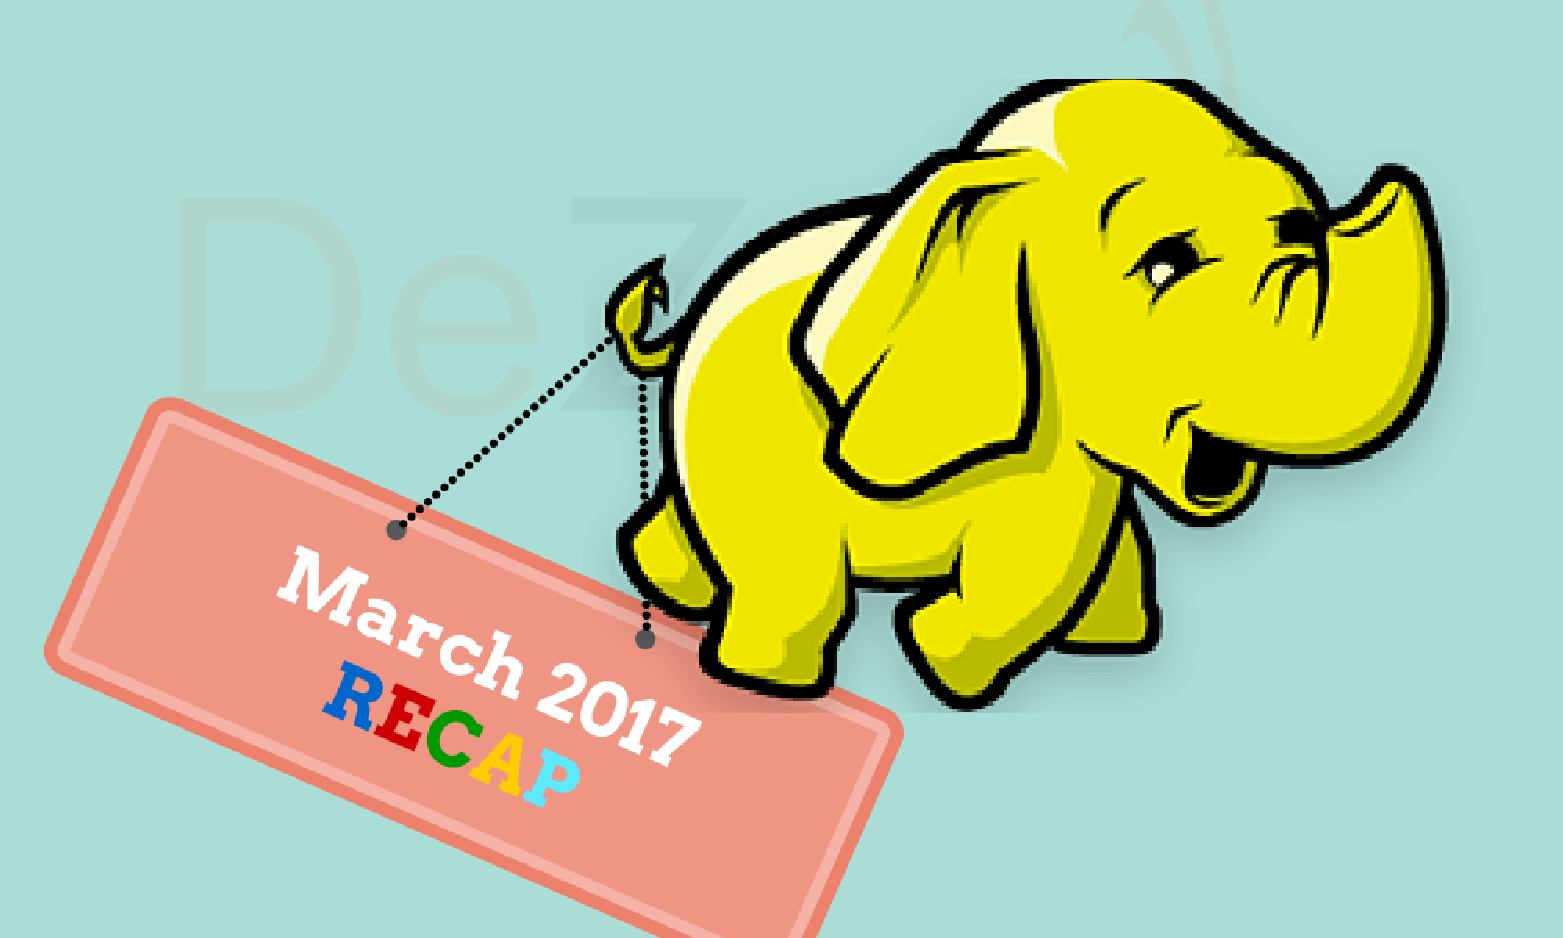 Big data and Hadoop News 2017